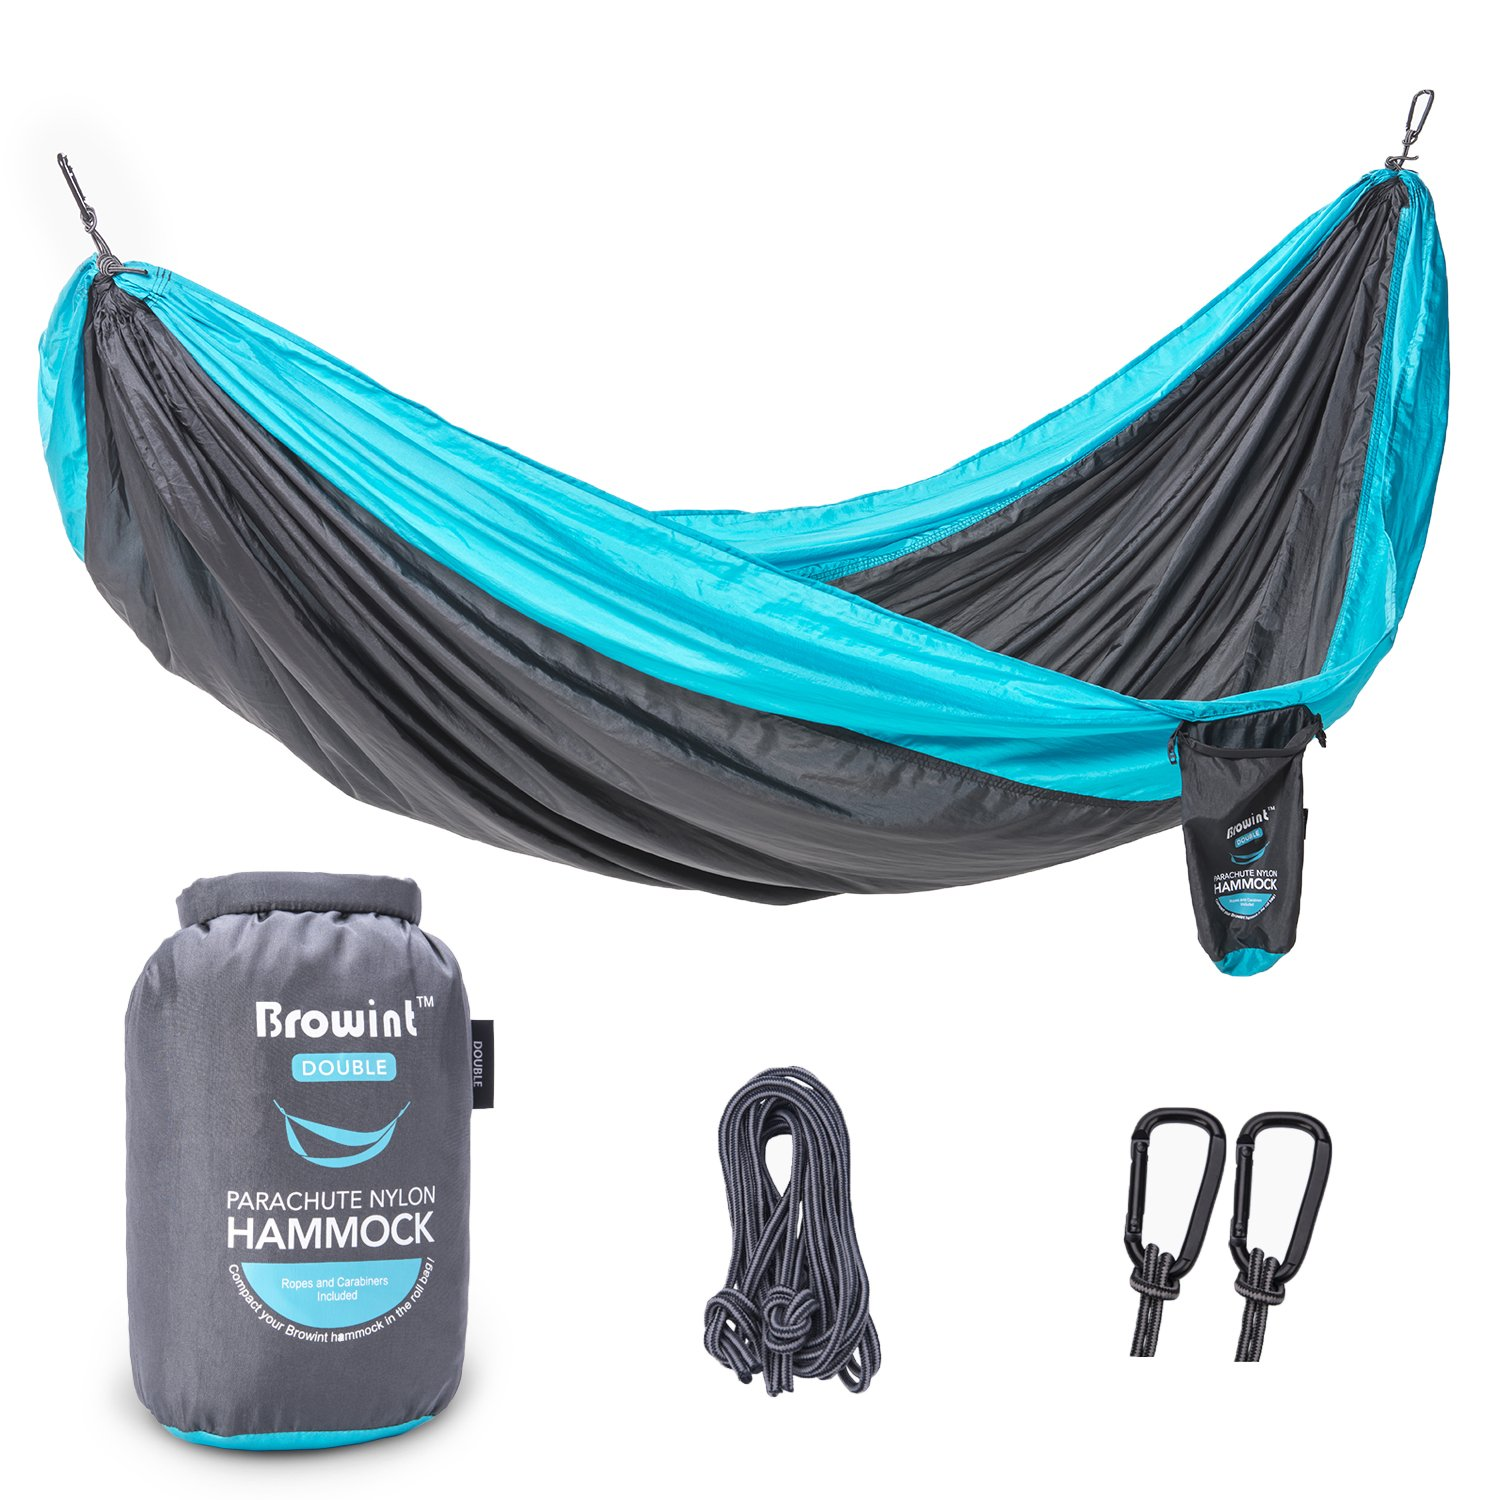 BROWINT Double Single Parachute Nylon Camping Hammock, Lightweight Portable Hammock, 220T Nylon Outdoor Hammock for Camping, Backpacking, Travel, Yard. 10 L x 6 8 W 10 L x 5 W